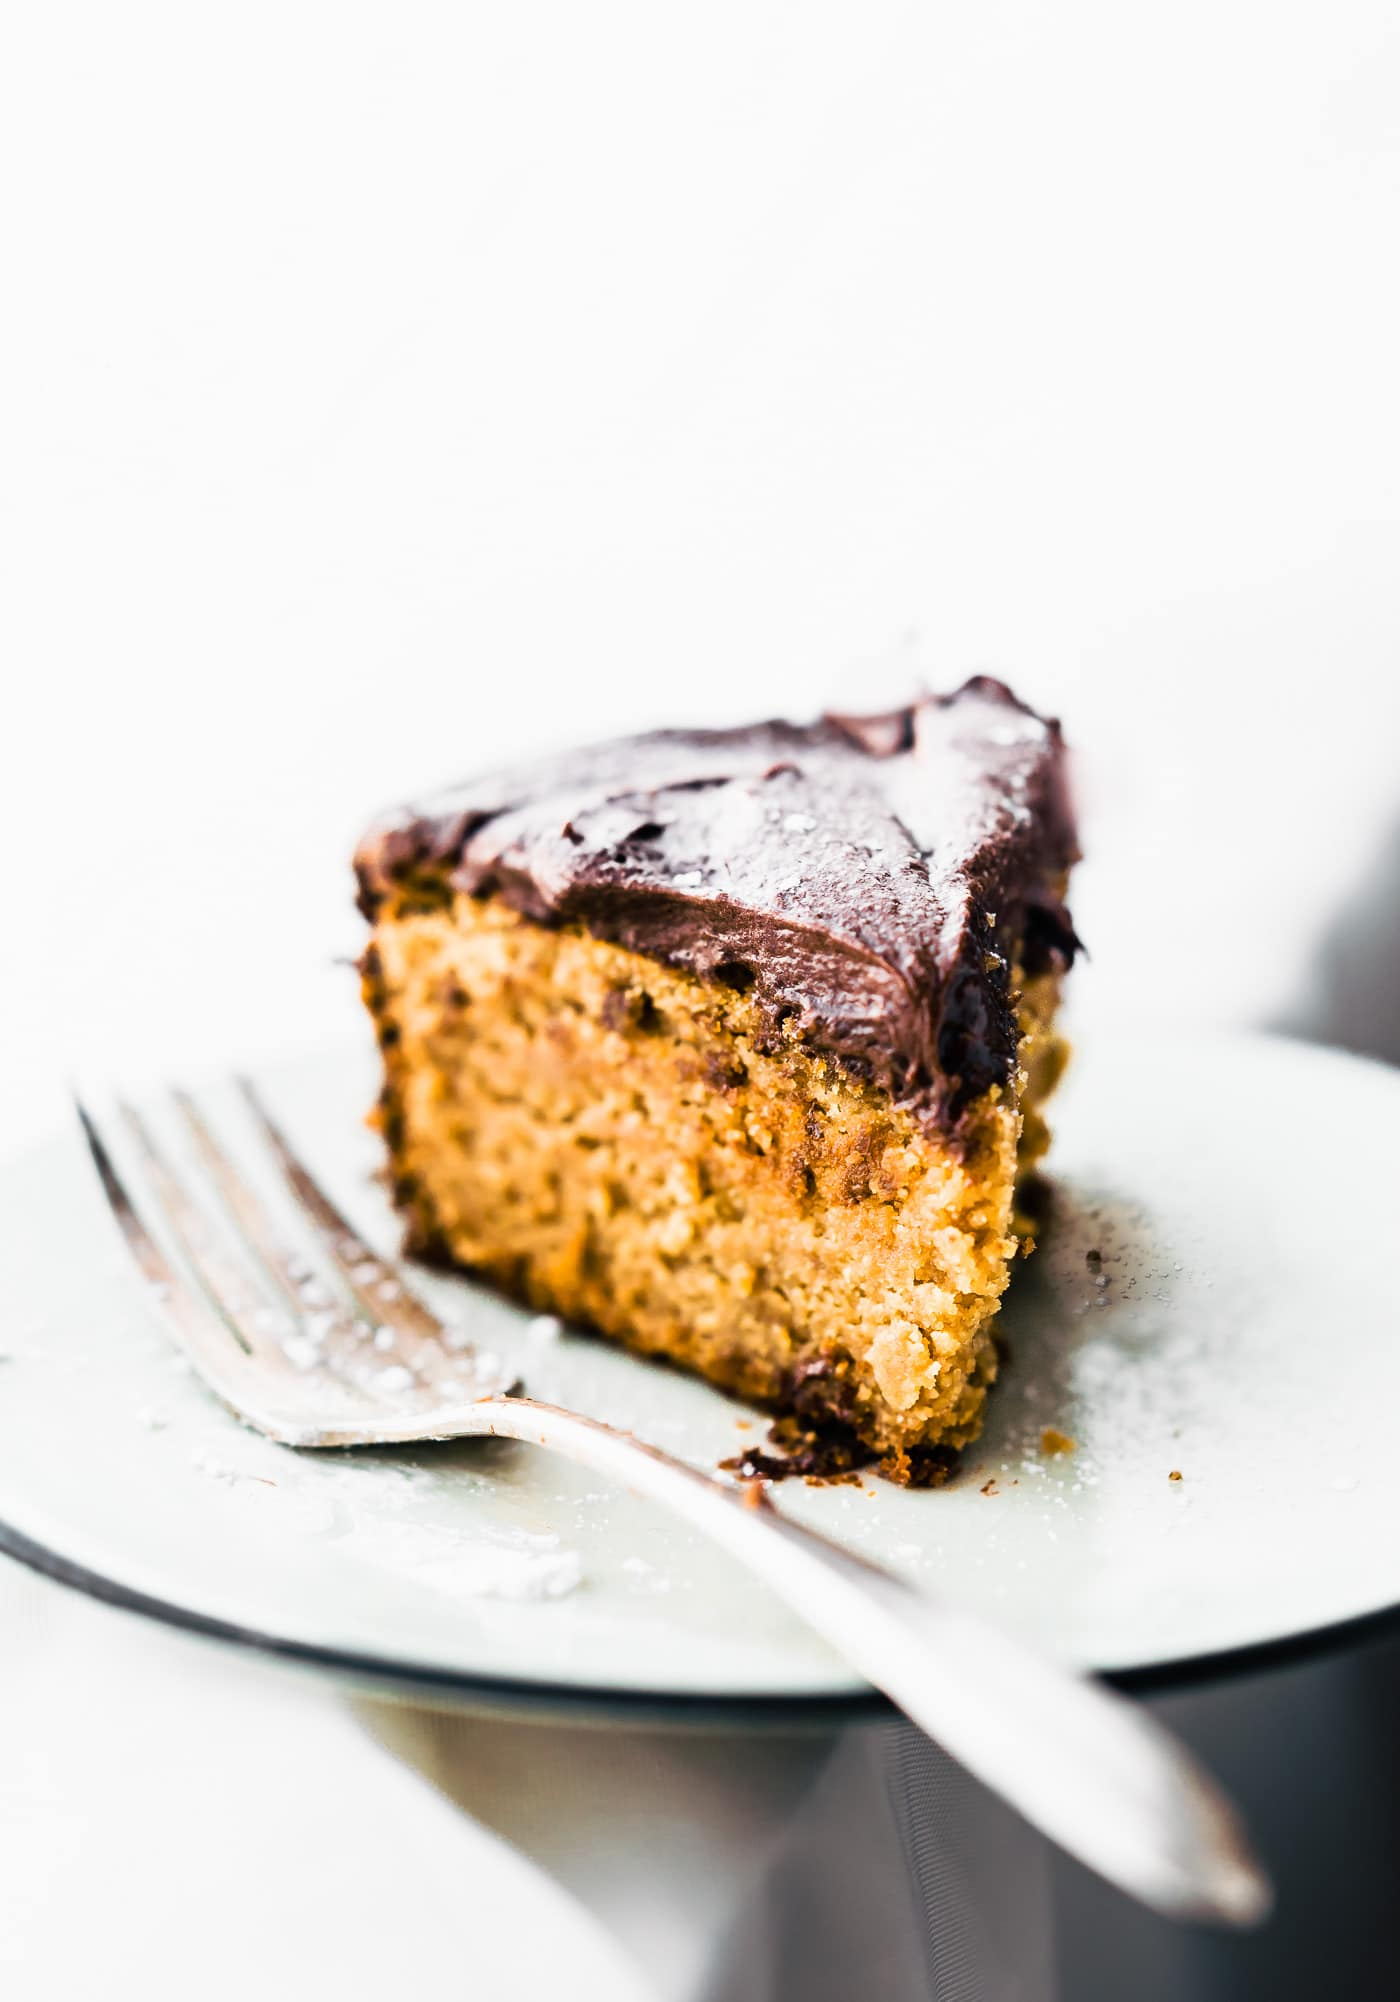 Slice of Vegan White Cake with Chocolate Coconut Cream Frosting on a plate. (paleo)